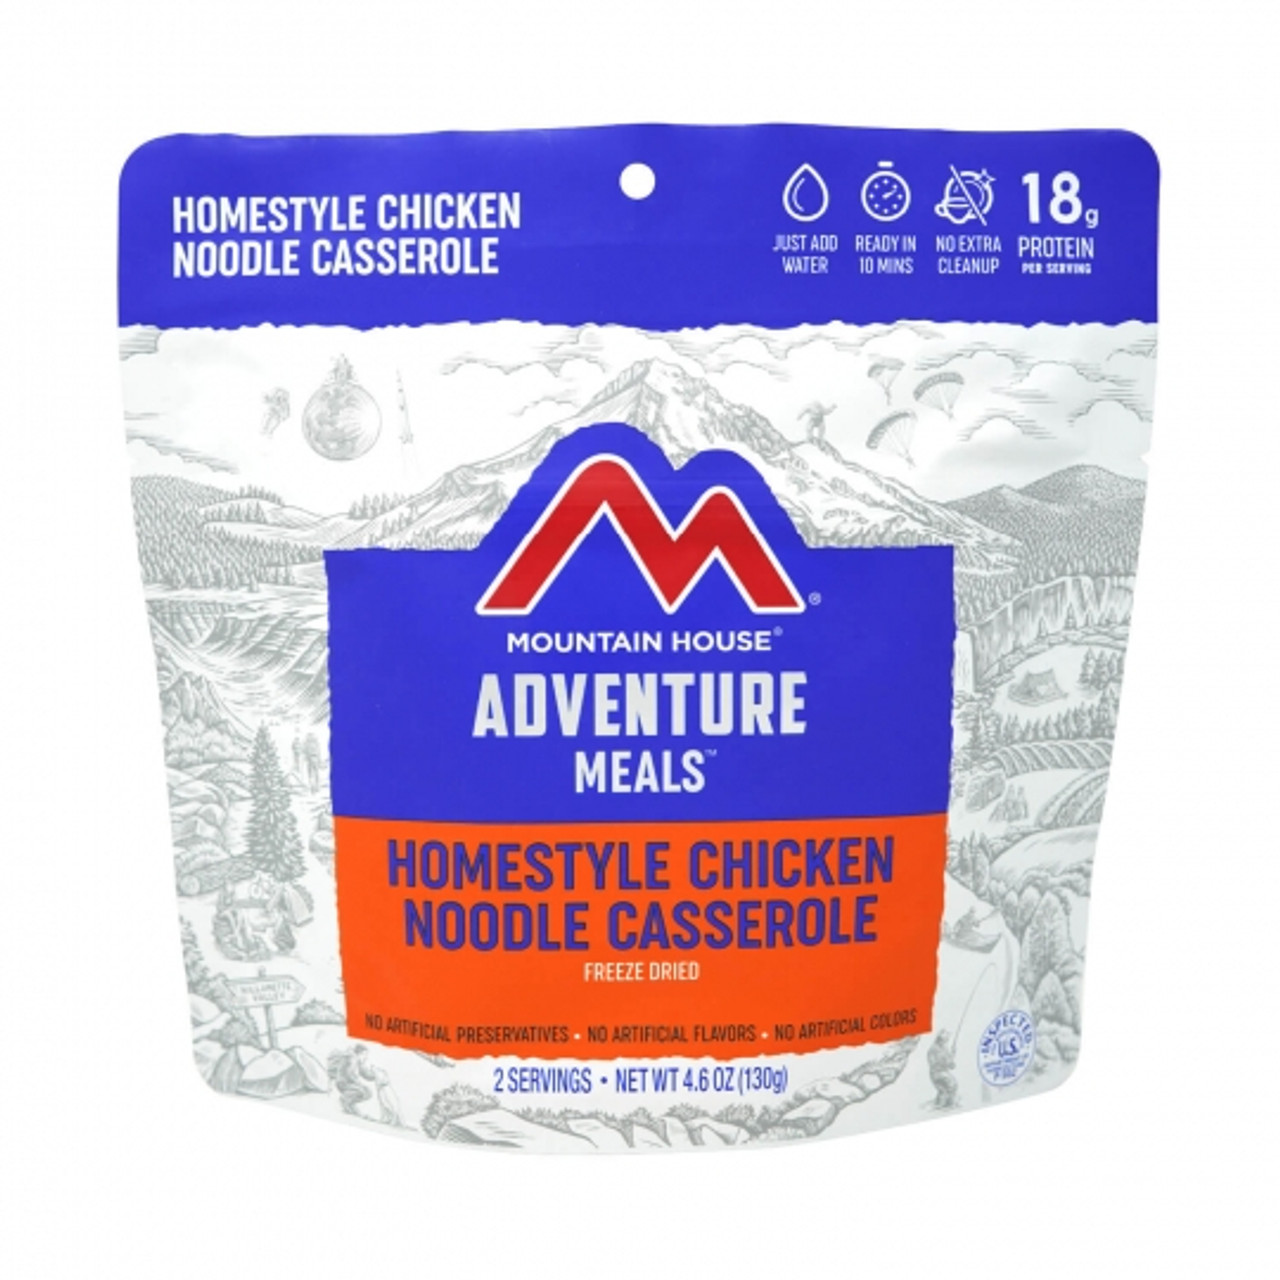 Mountain House Homestyle Chicken Noodle Casserole Pouch